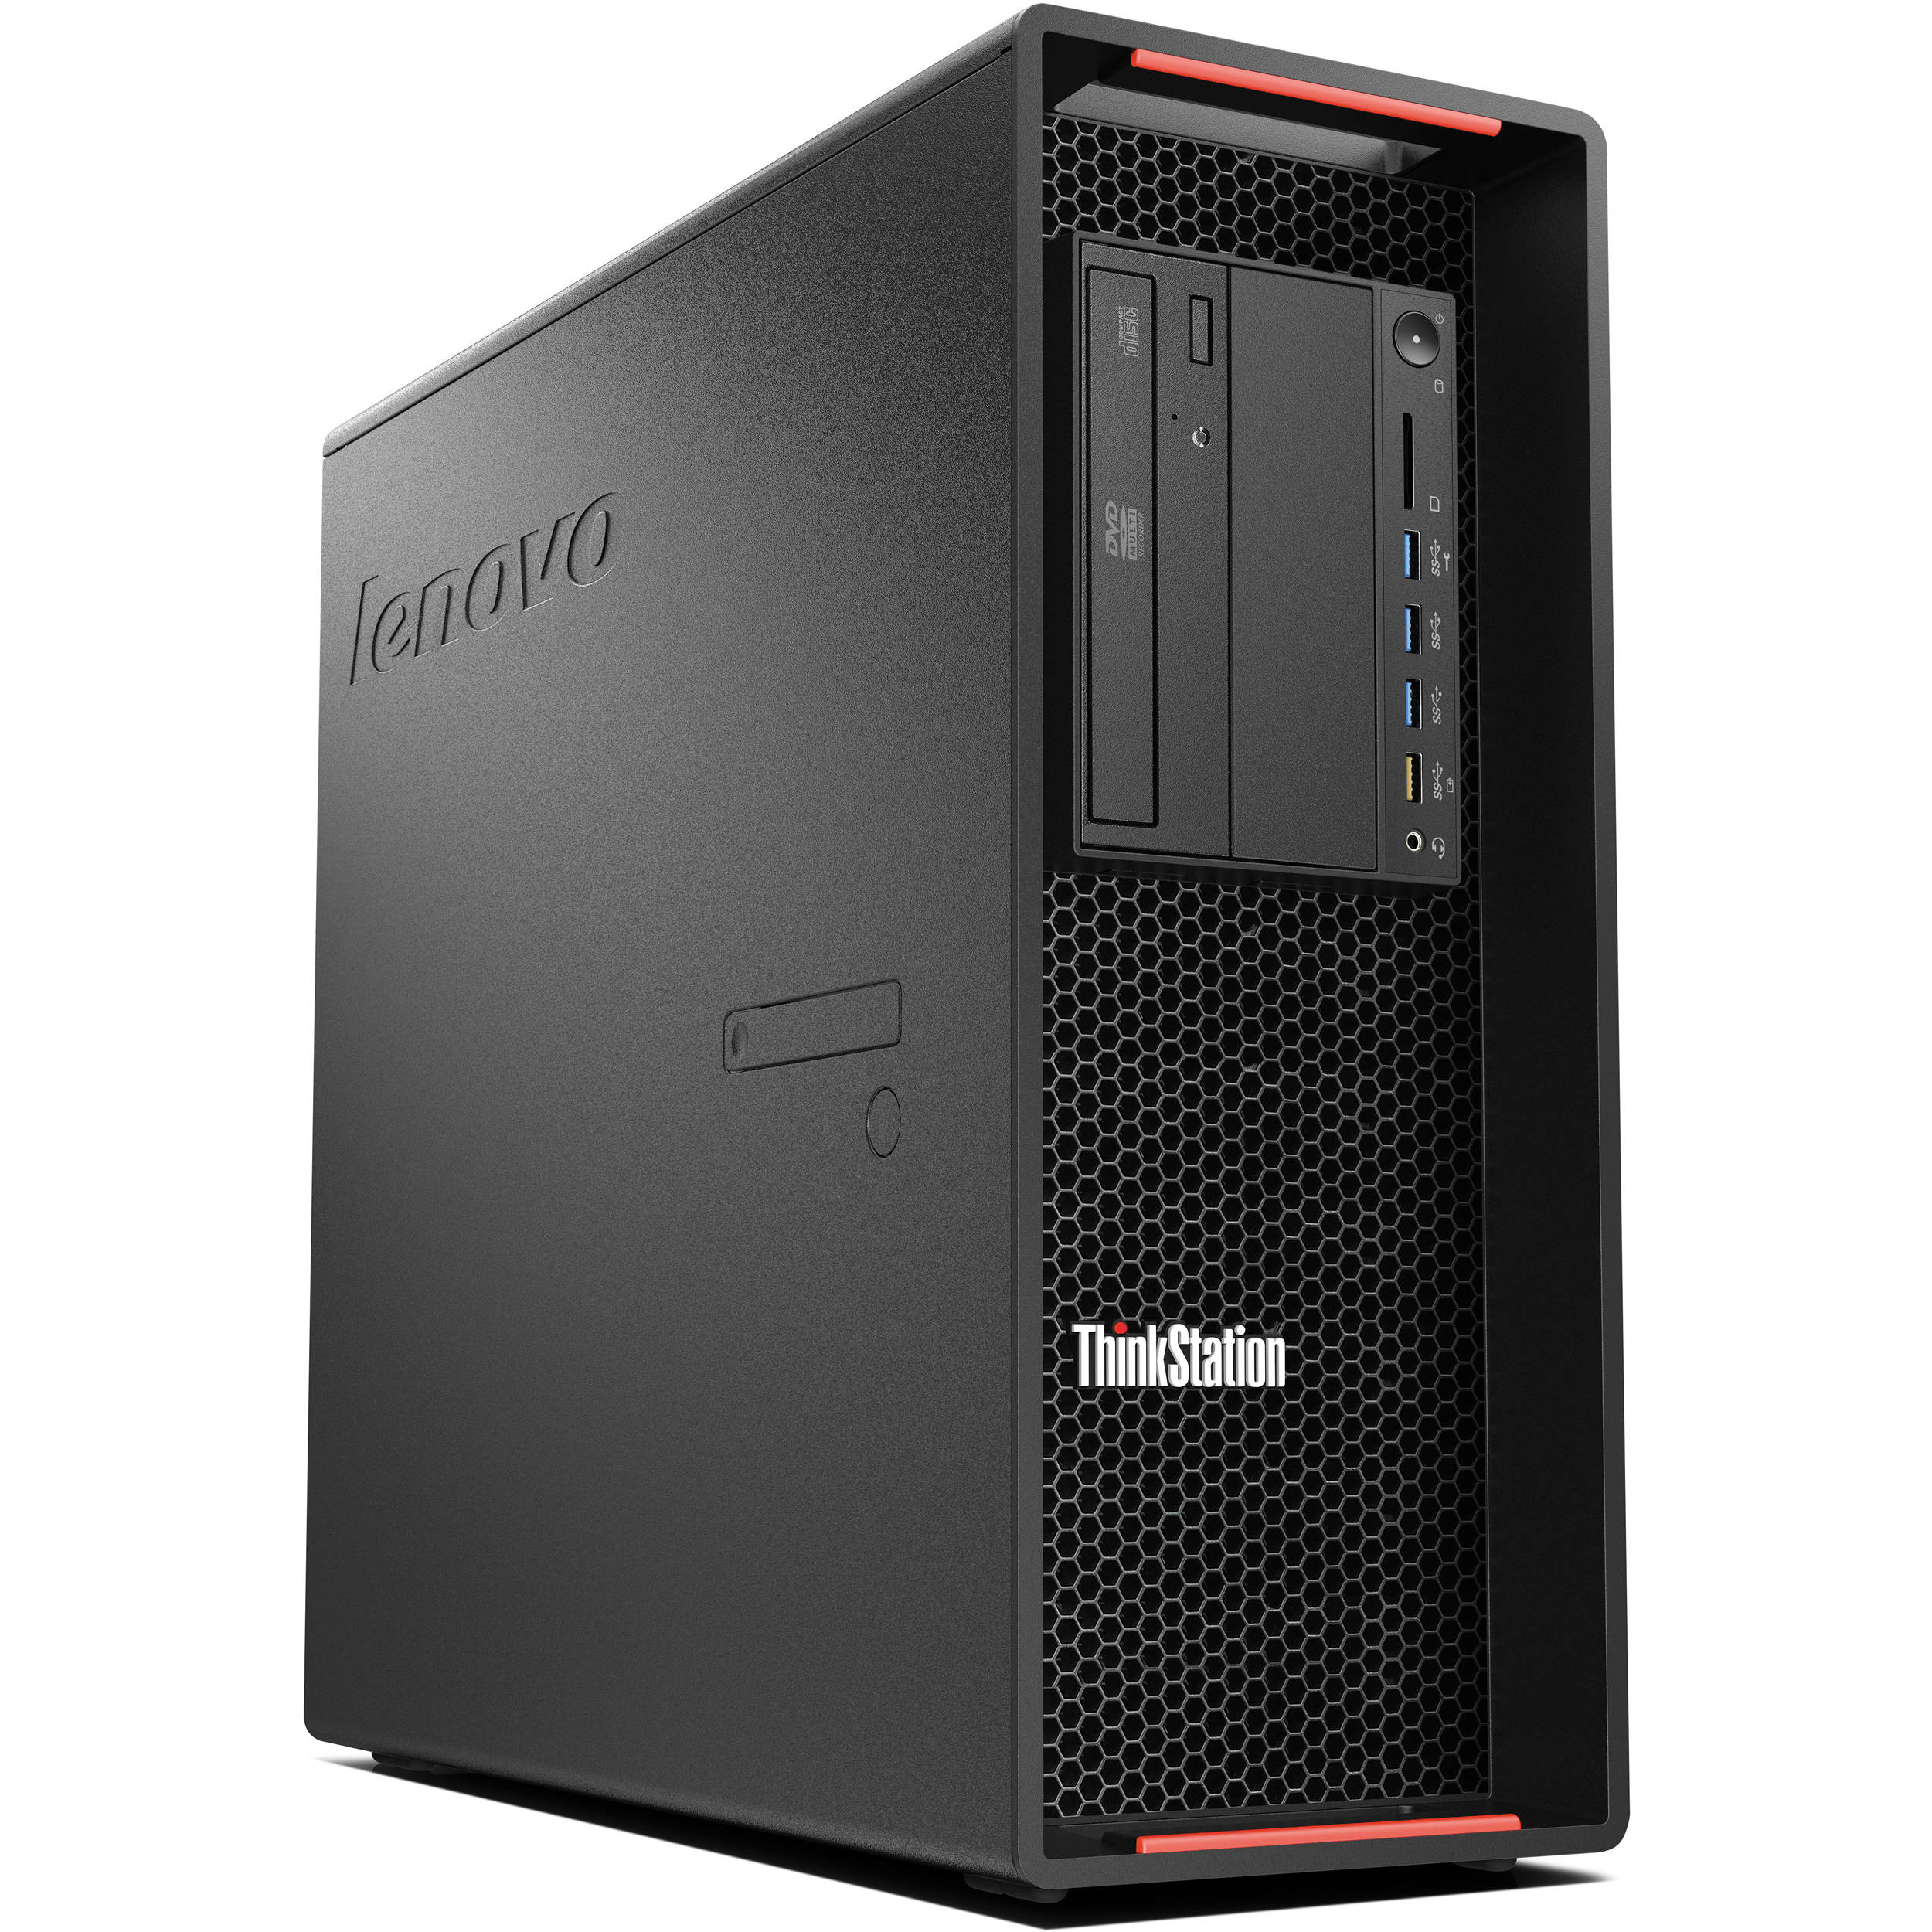 Lenovo ThinkStation P700 AMD Graphics Drivers Download (2019)